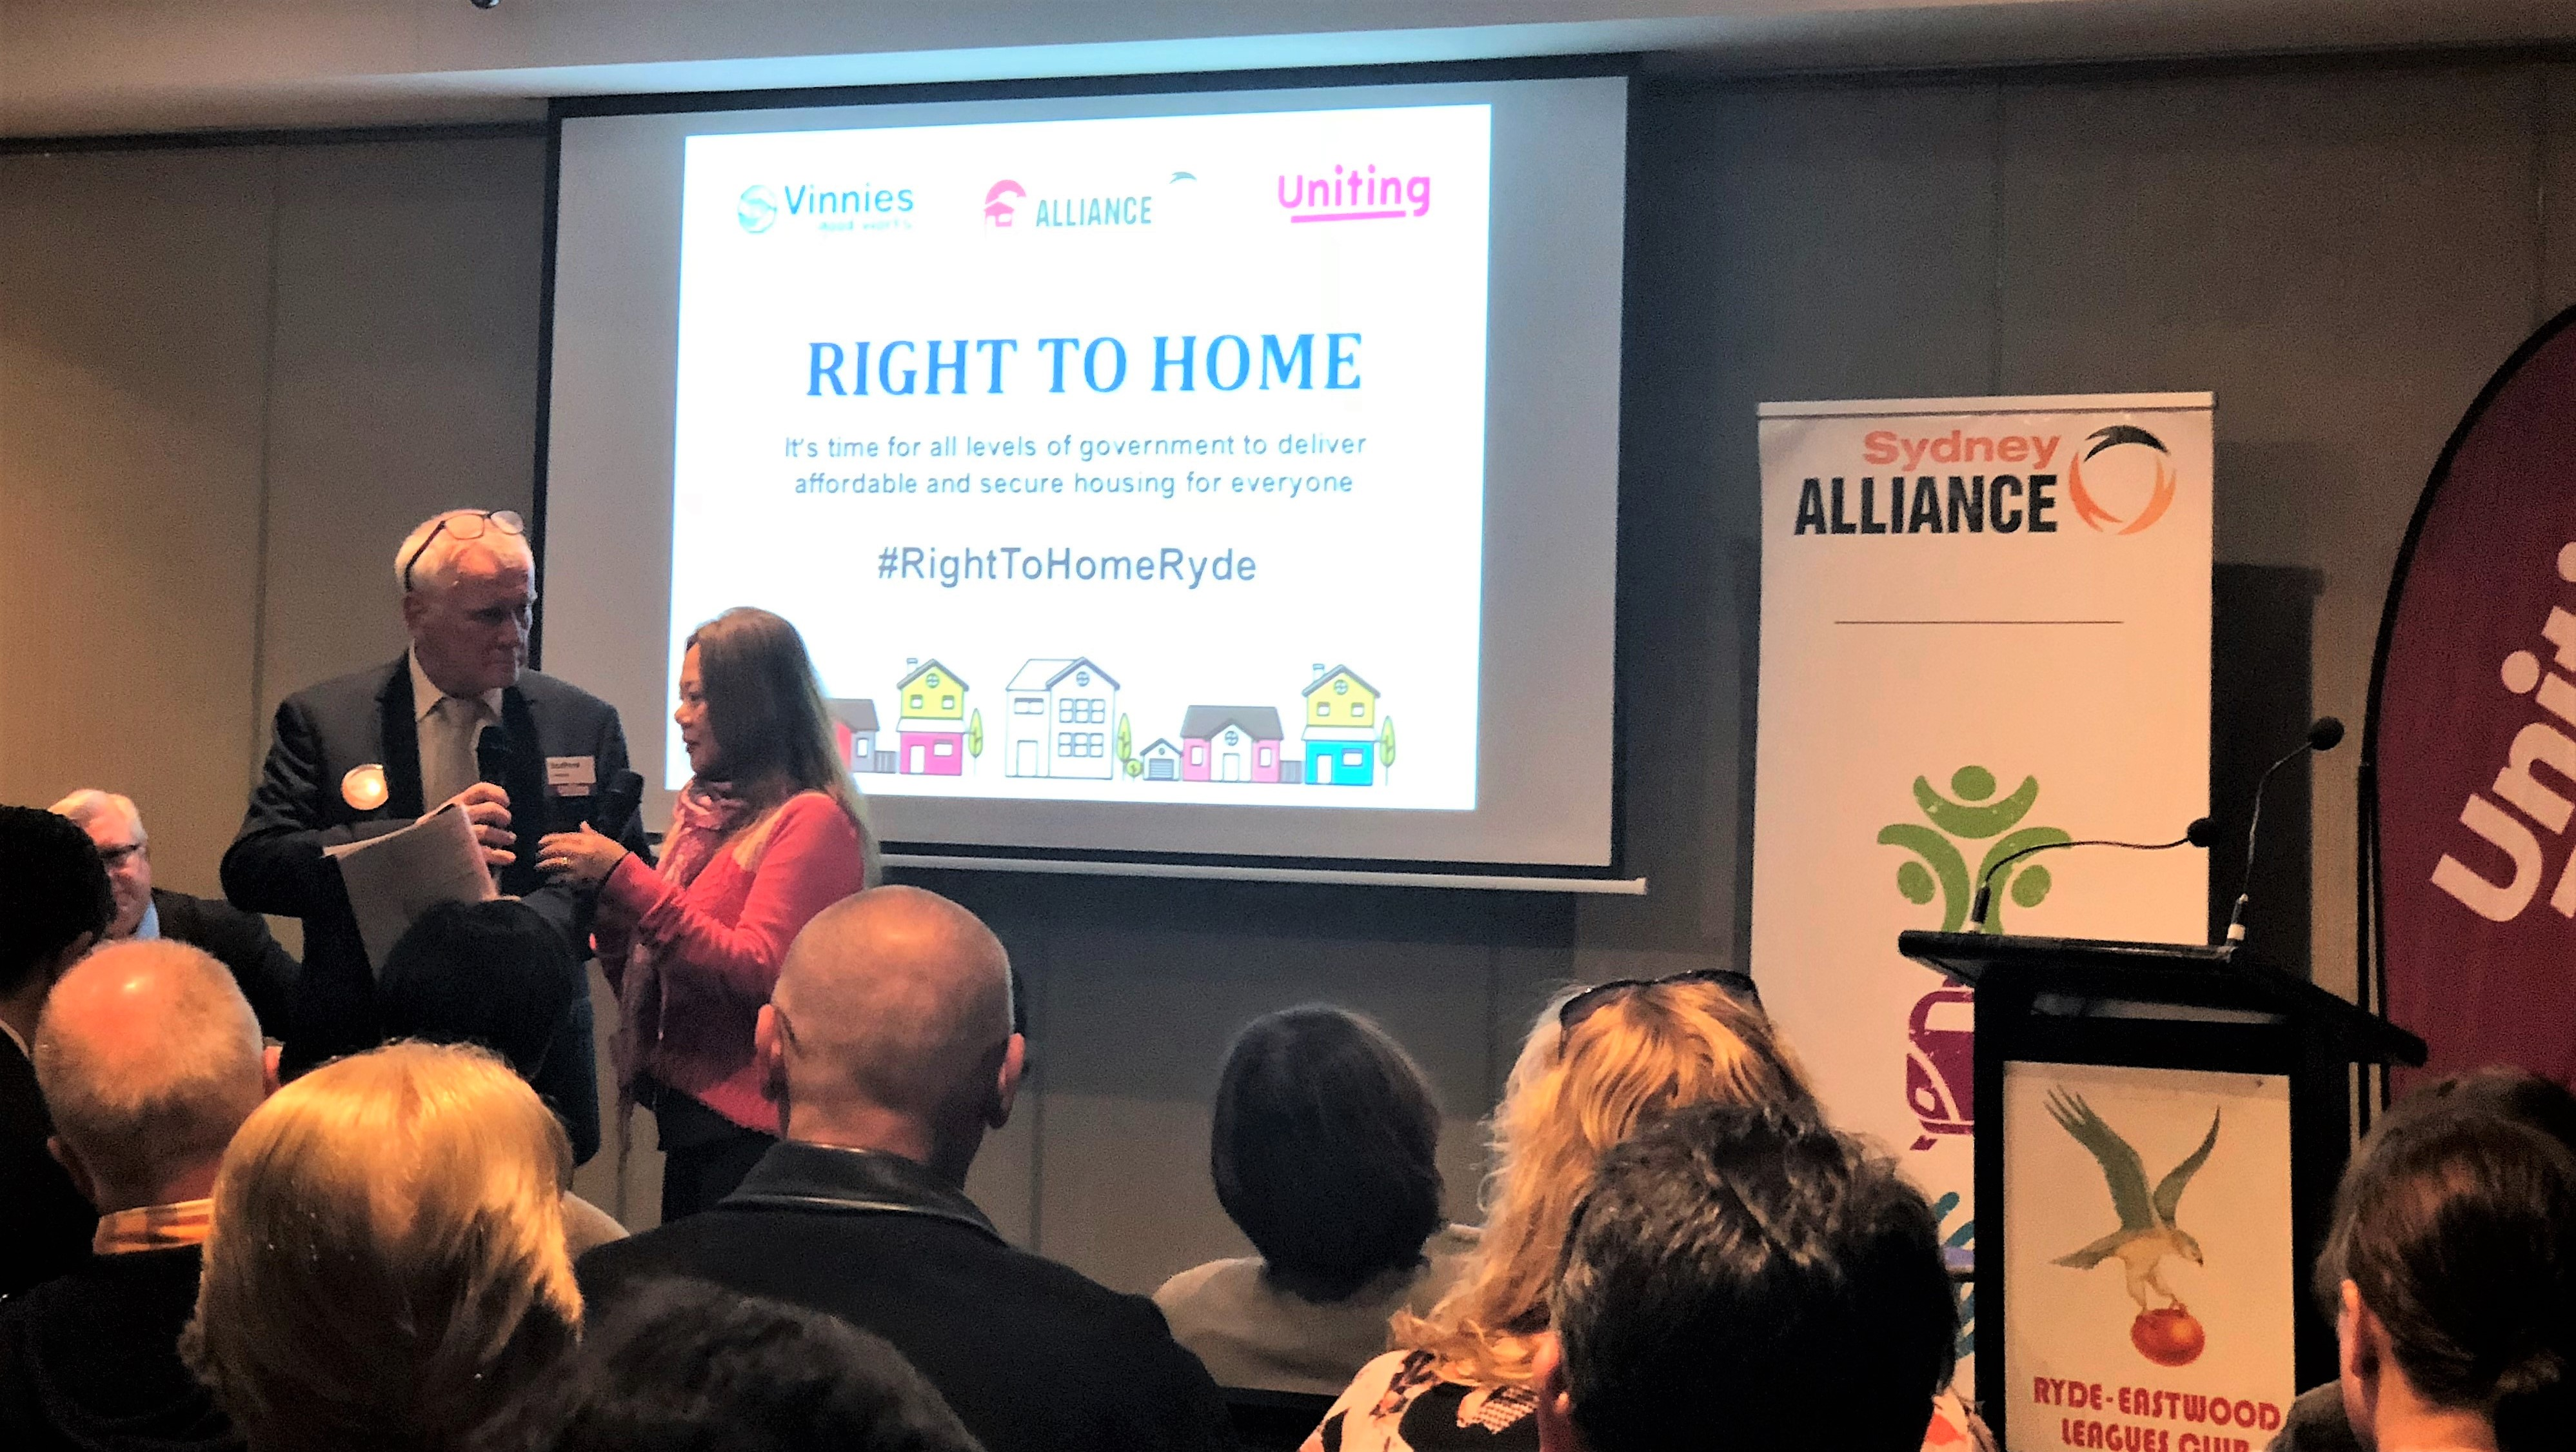 Local renter Tammy Wang shares her experiences with Stafford Sanders of Uniting and the Sydney Alliance at the Ryde forum – and an audience of 150 representing ov er 1000 organisations across Sydney.